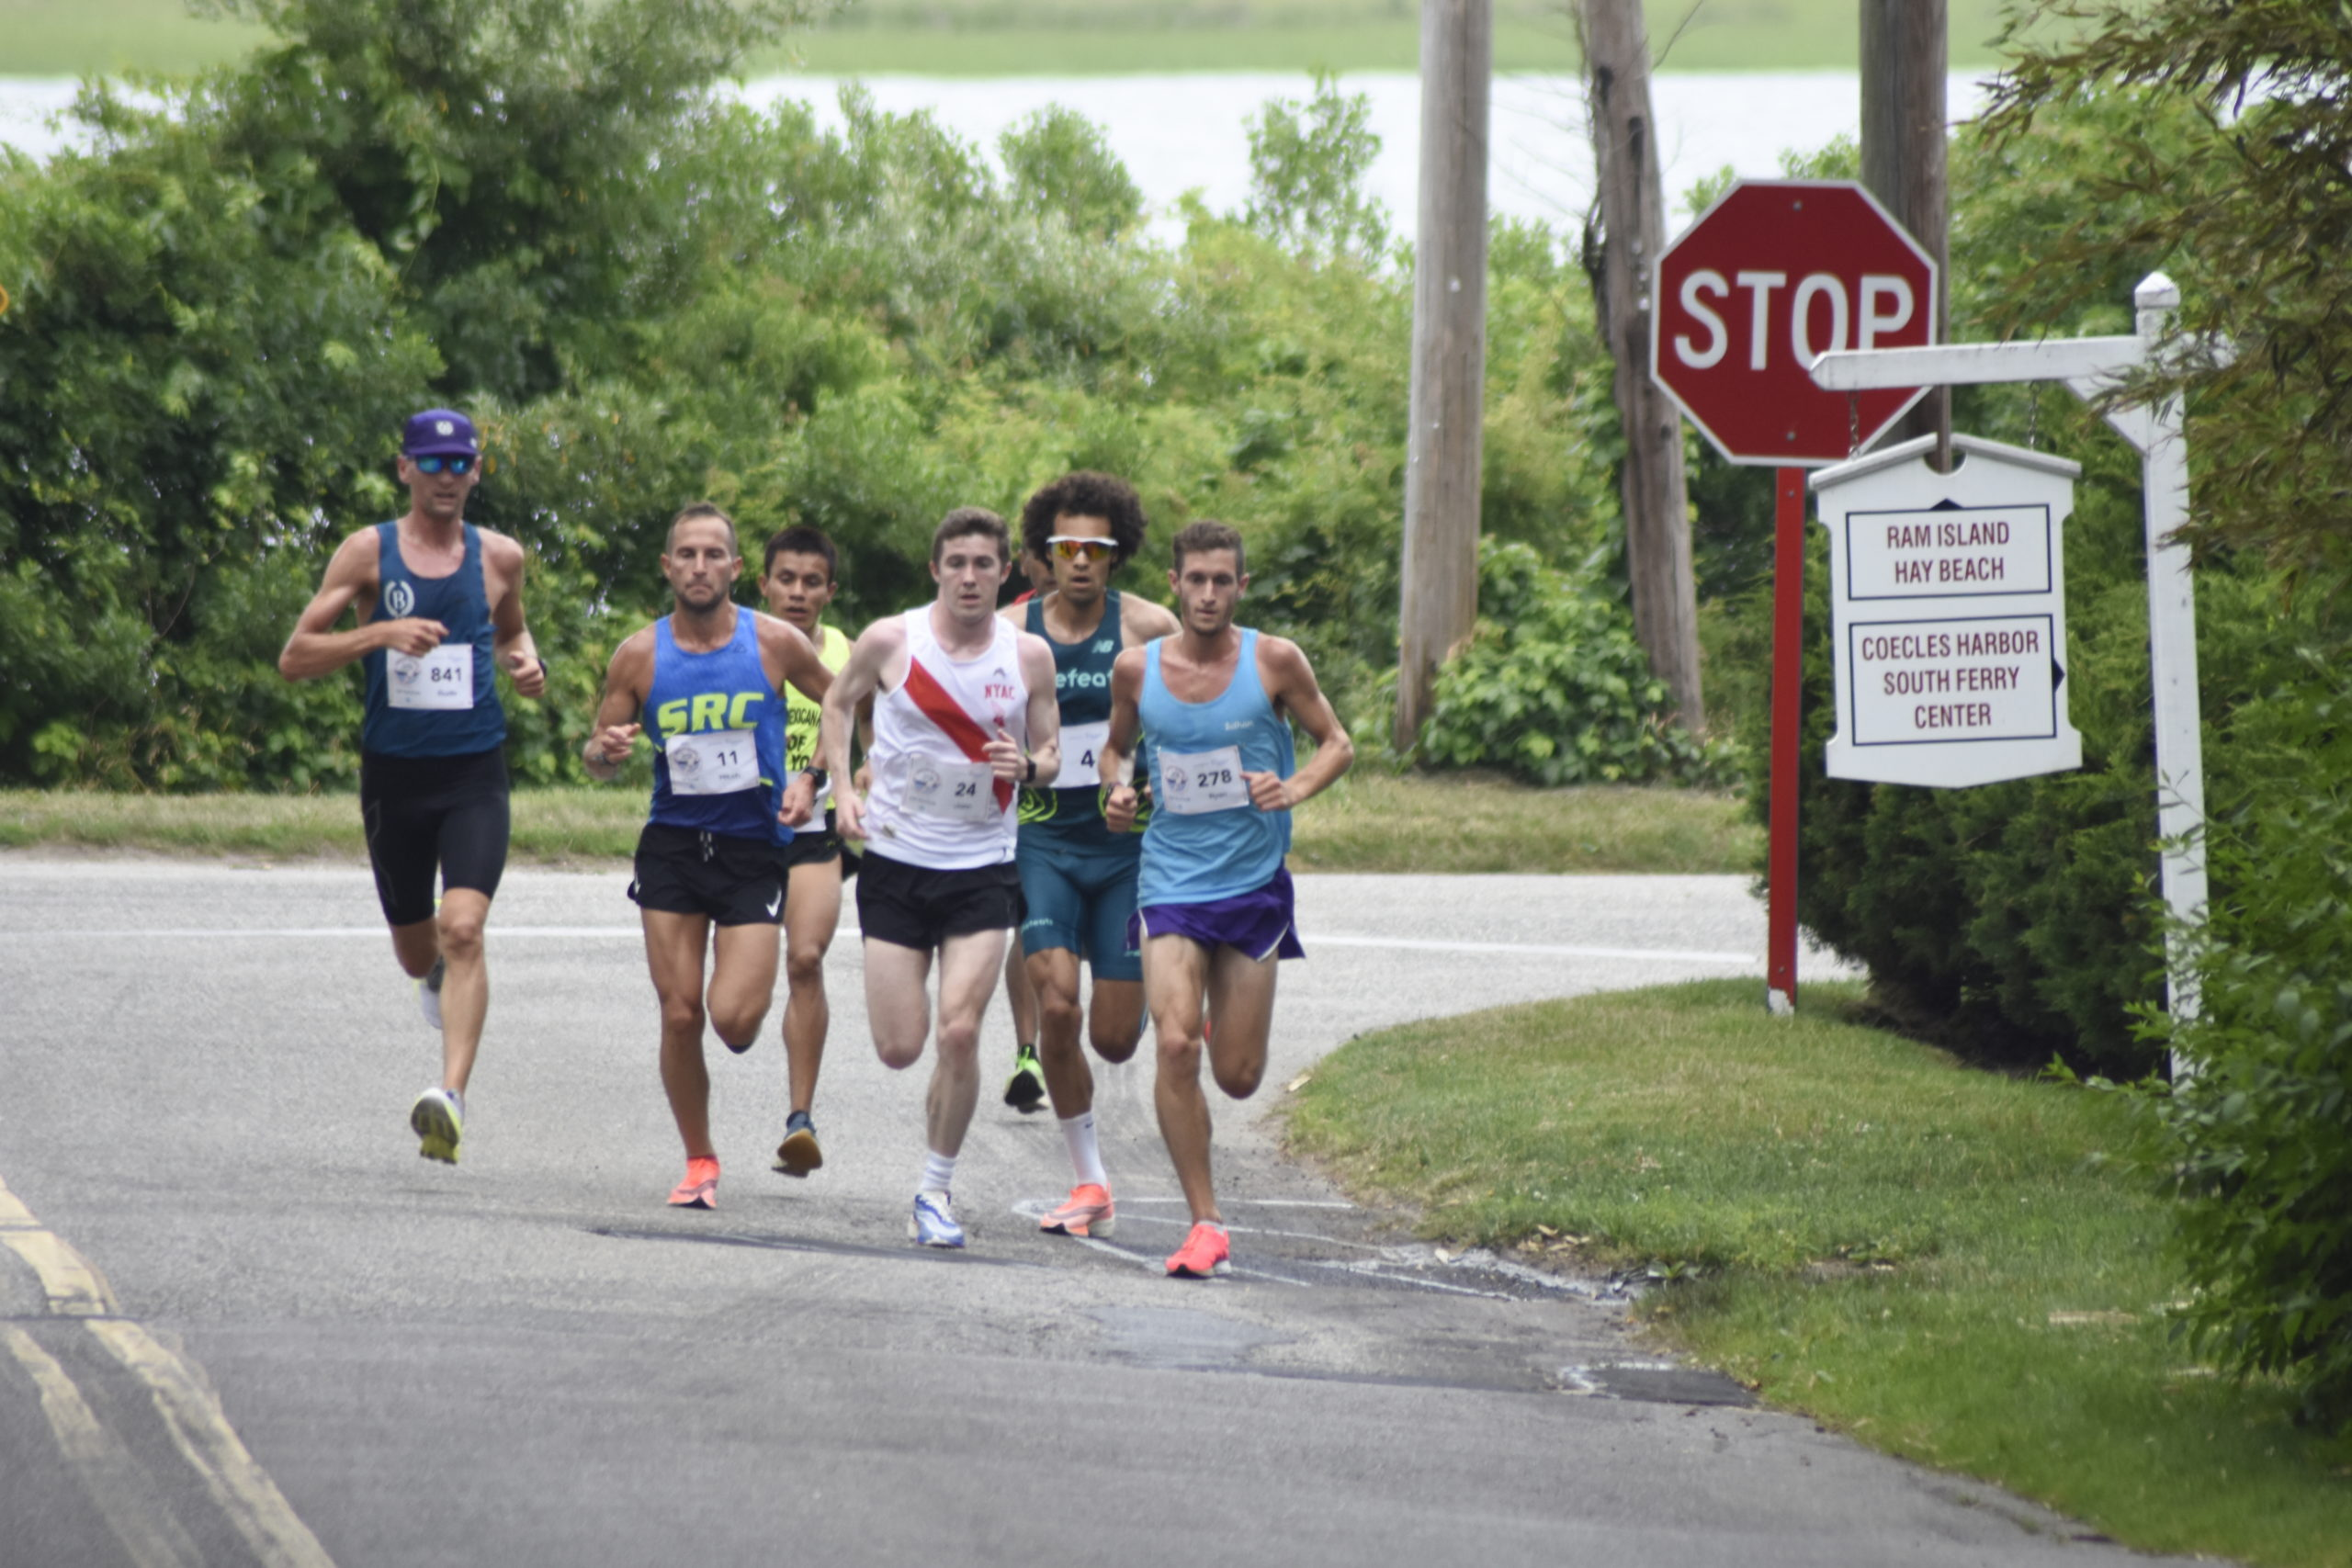 The same pack of runners stuck together through much of the race on Saturday.